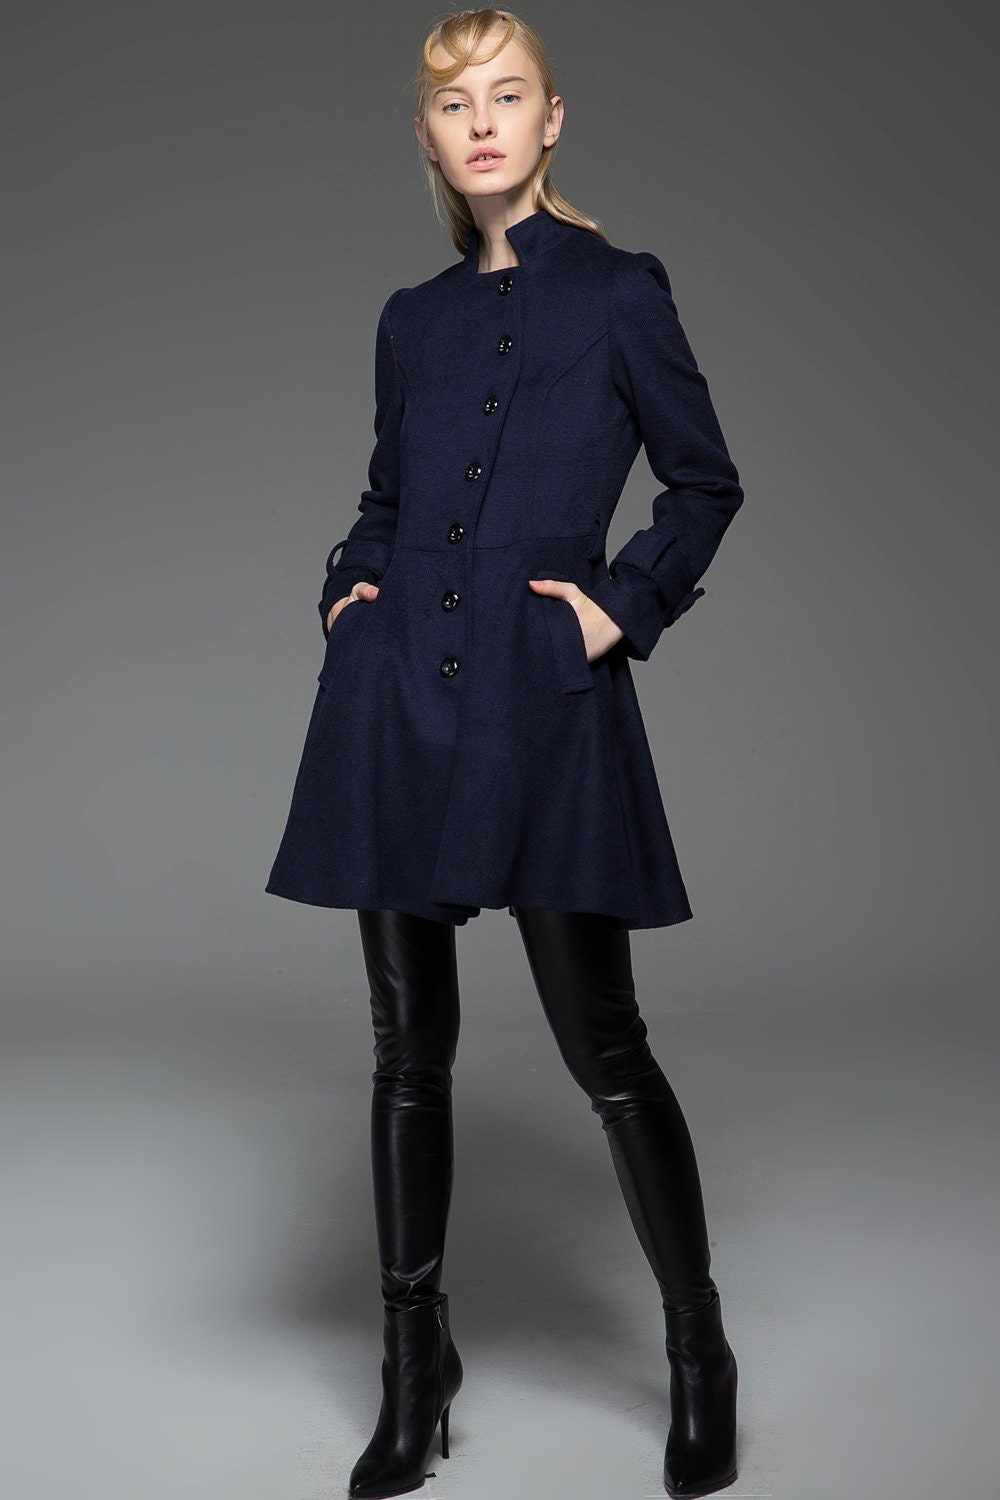 Shop a great selection of Clearance Women's Coats & Jackets at Nordstrom Rack. Find designer Clearance Women's Coats & Jackets up to 70% off and get free shipping on orders over $